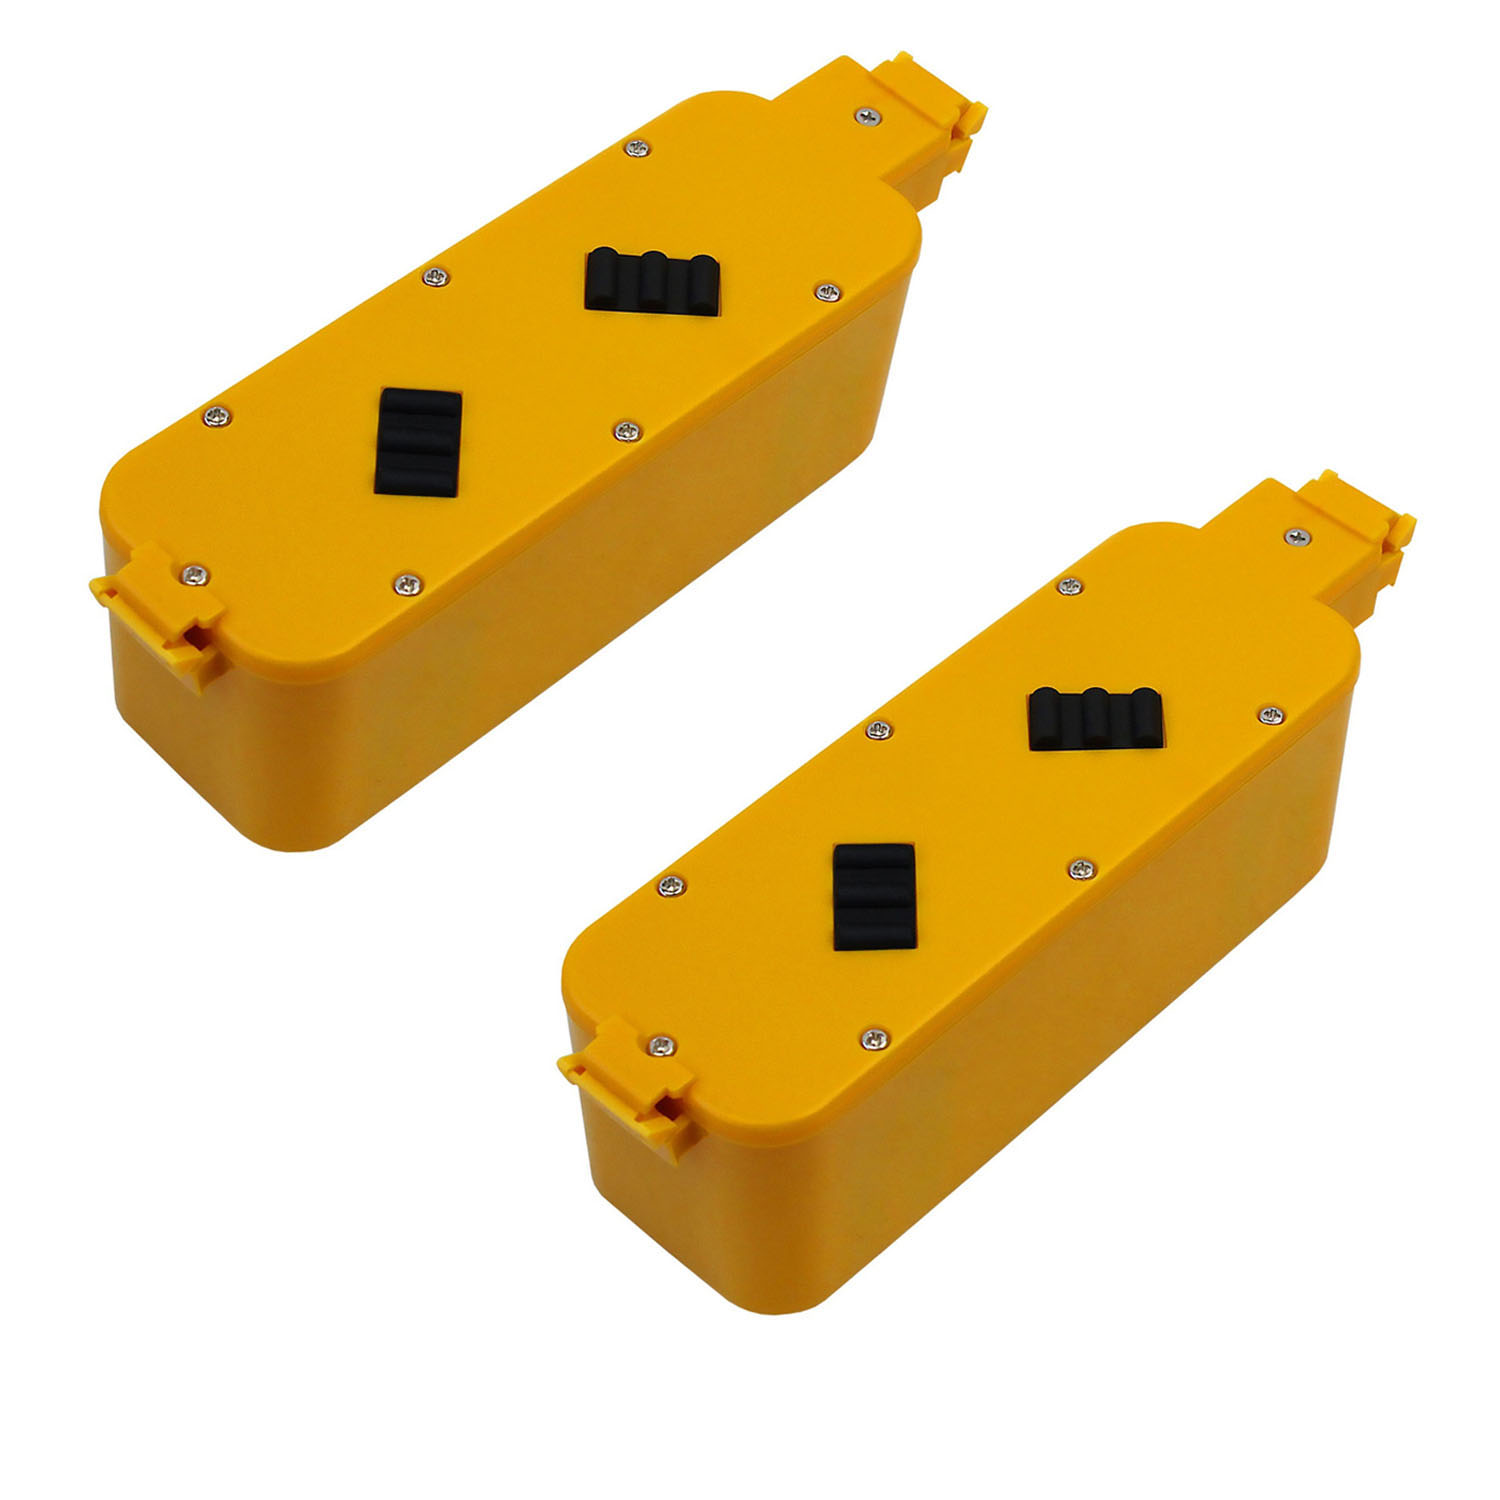 14.4v 2000MAH Battery for iRobot Roomba 400, 405 - 2 Pack